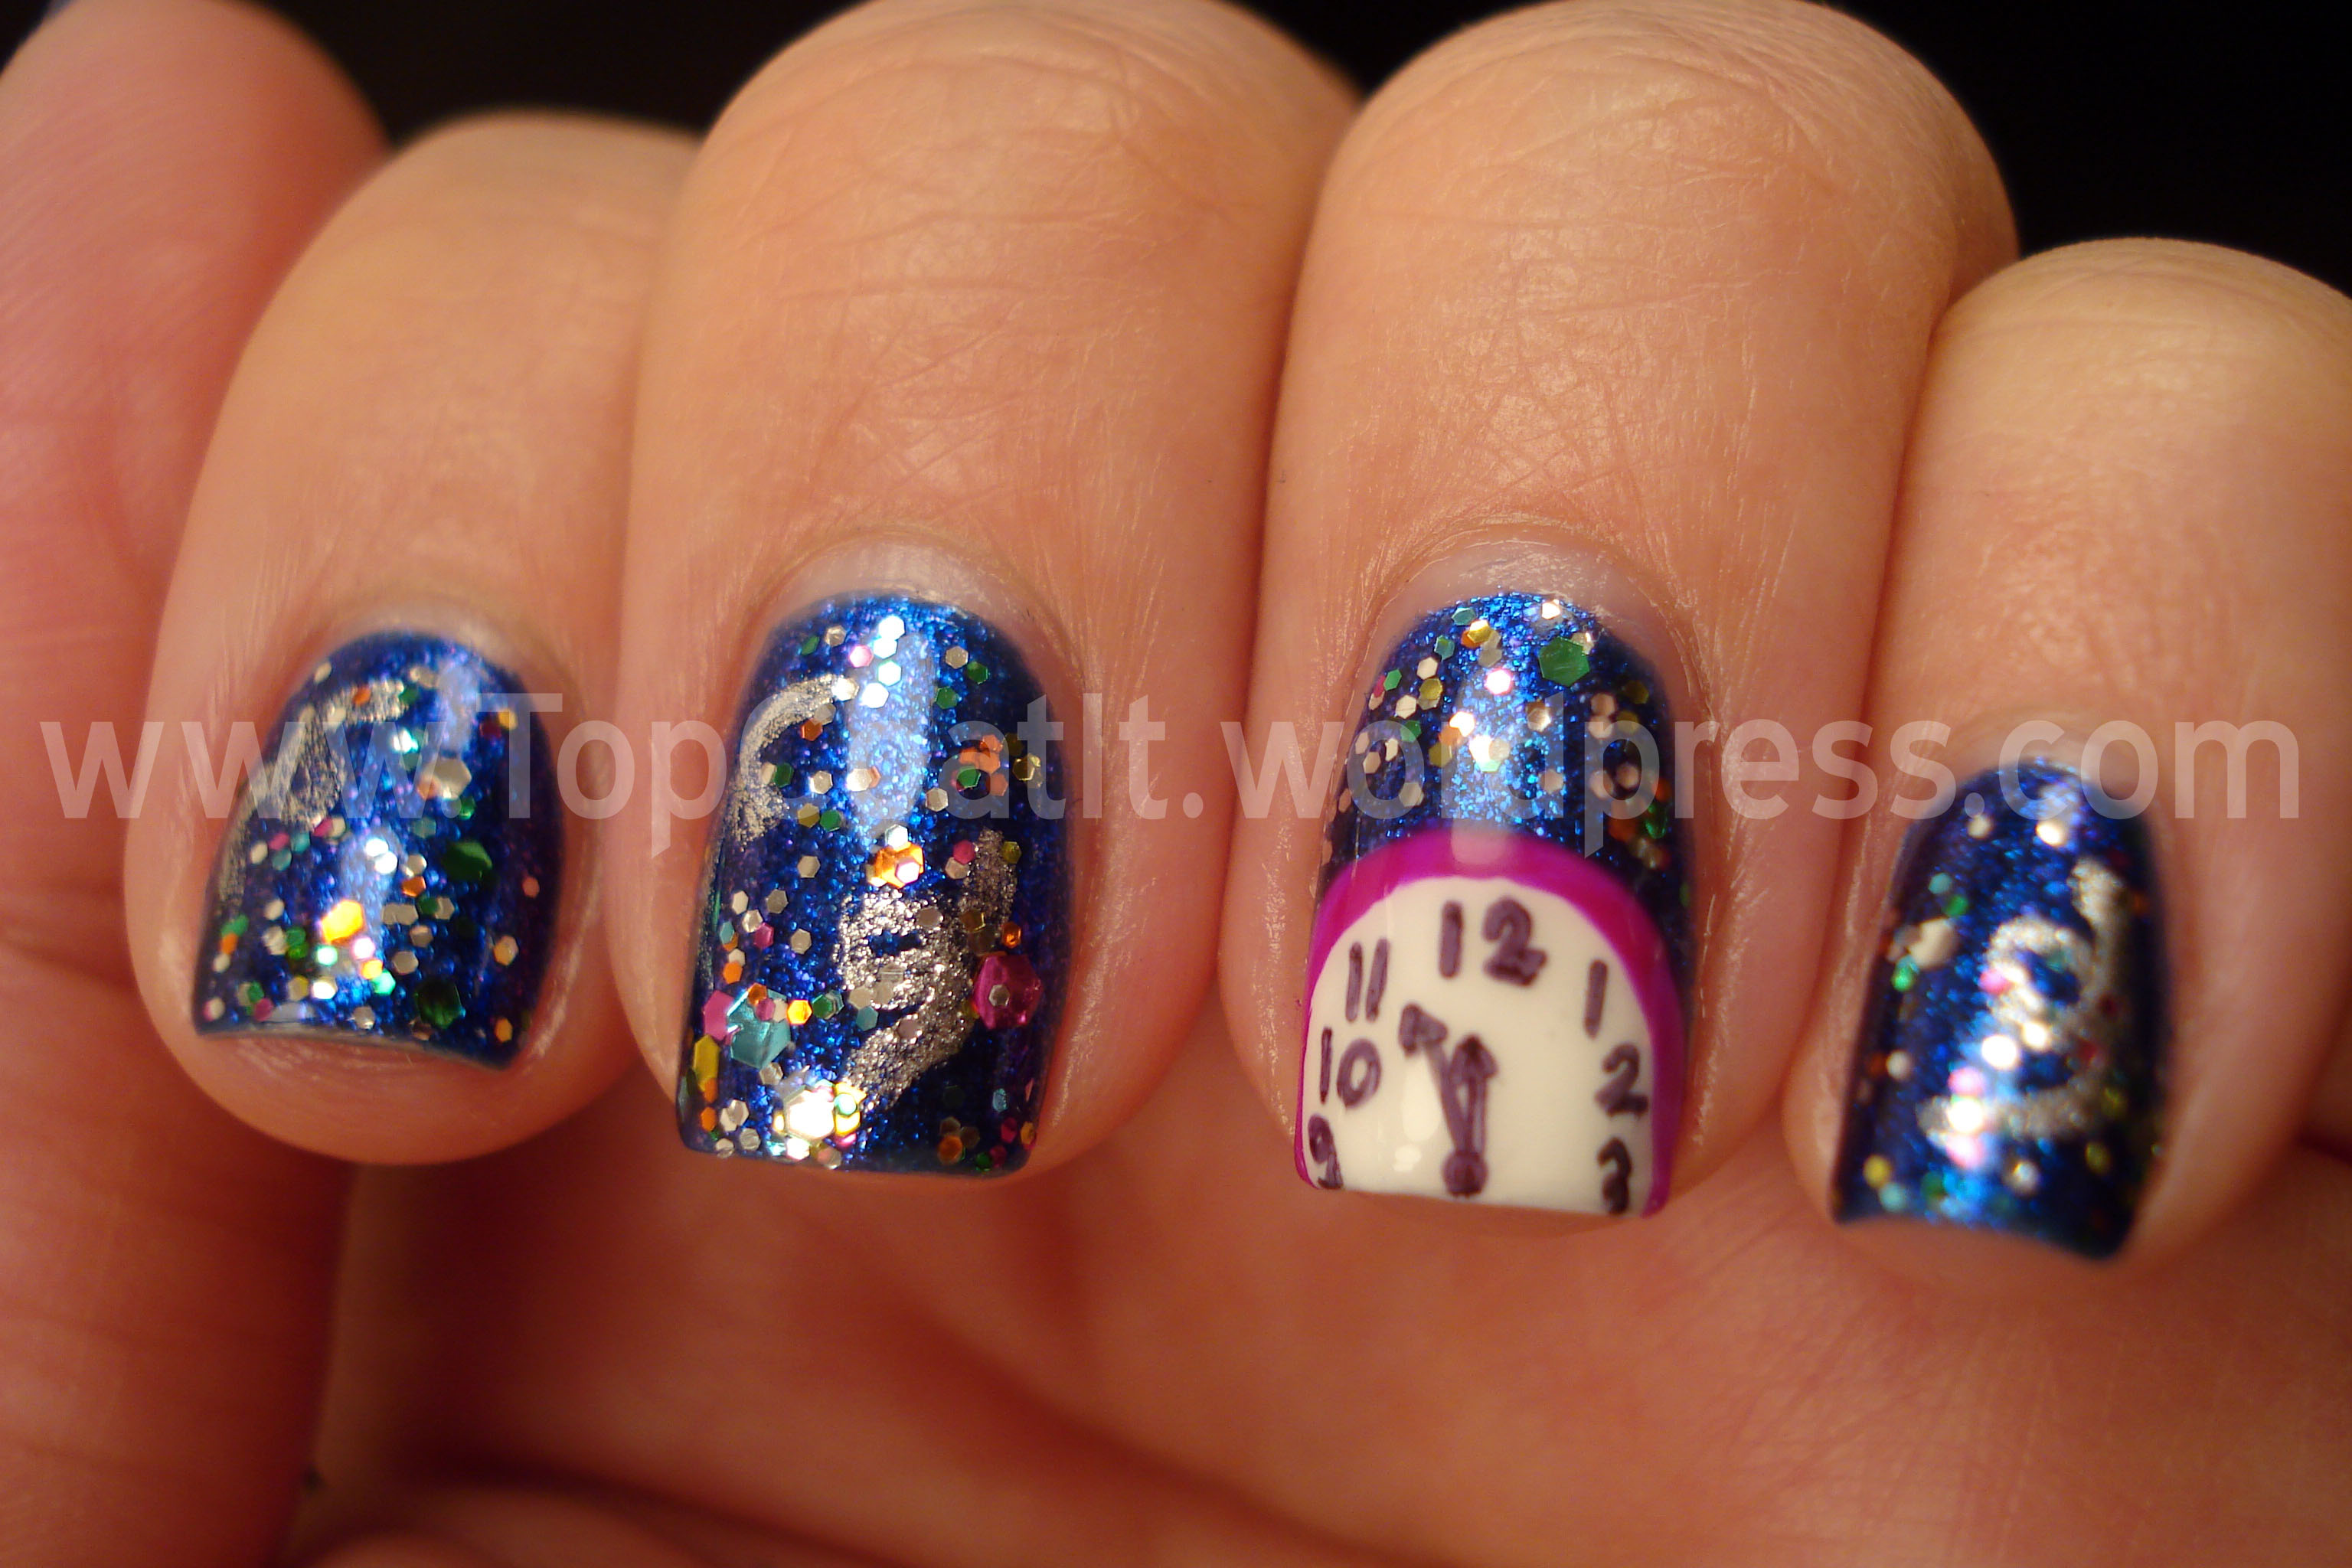 New years eve nails designs choice image nail art and nail new years eve nails designs images nail art and nail design ideas new years eve nails prinsesfo Image collections